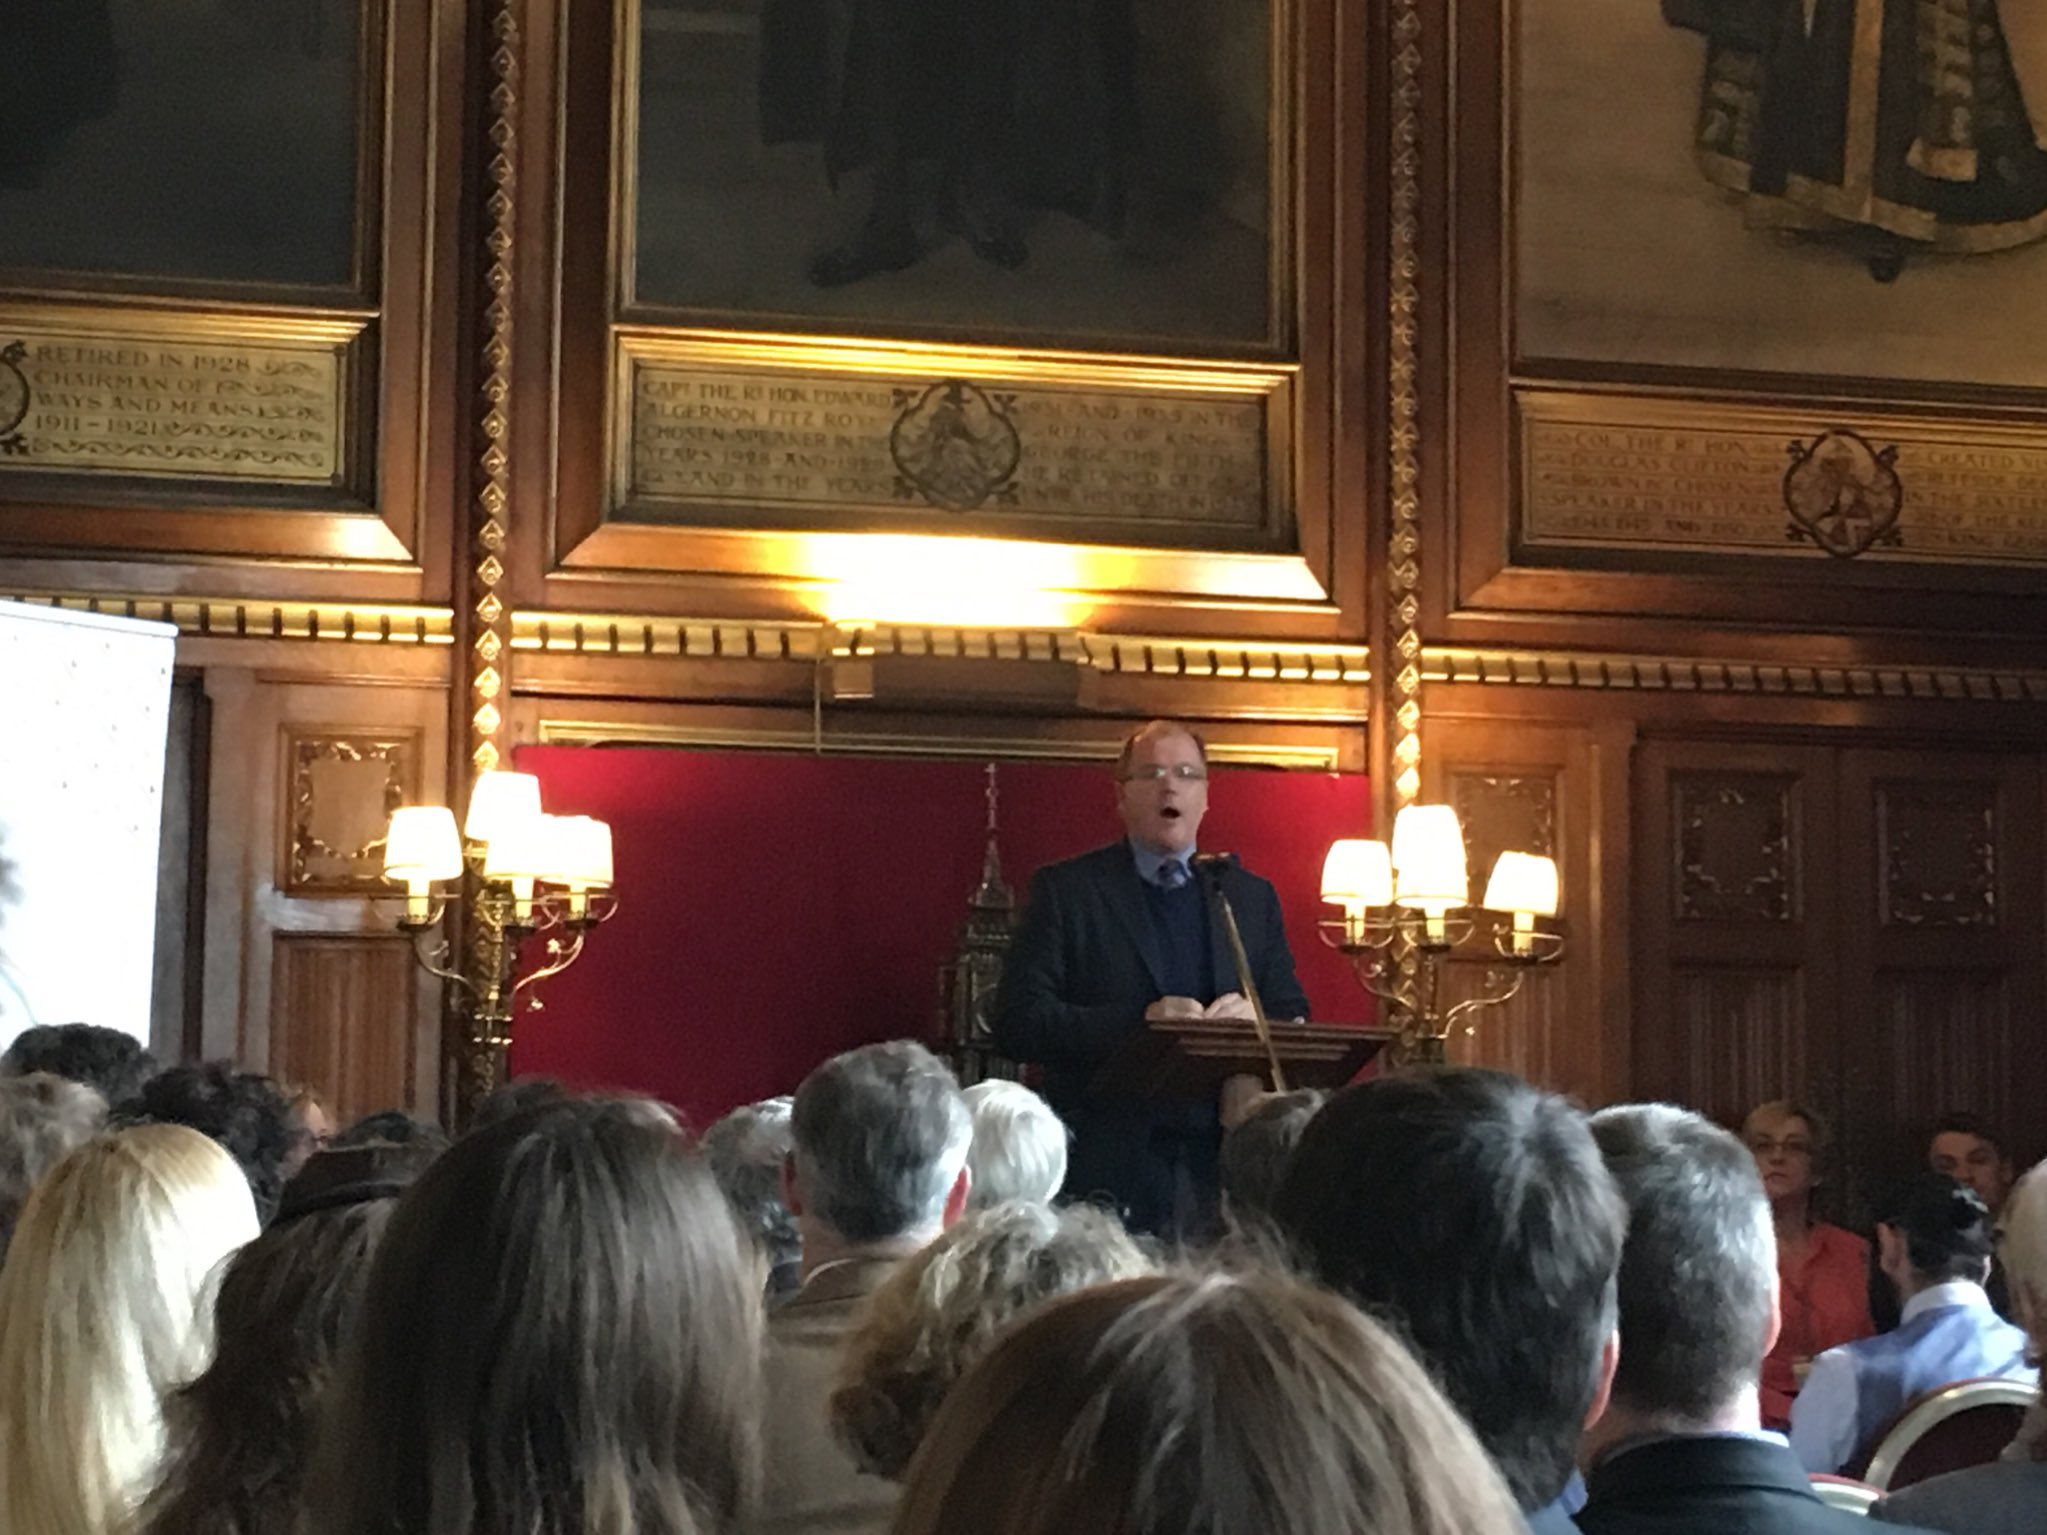 """.@Freeman_George welcomes celebration of evidence collectors & calls for """"scientific model of government"""" @senseaboutsci #EvidenceMatters https://t.co/Q49DJ00qEq"""